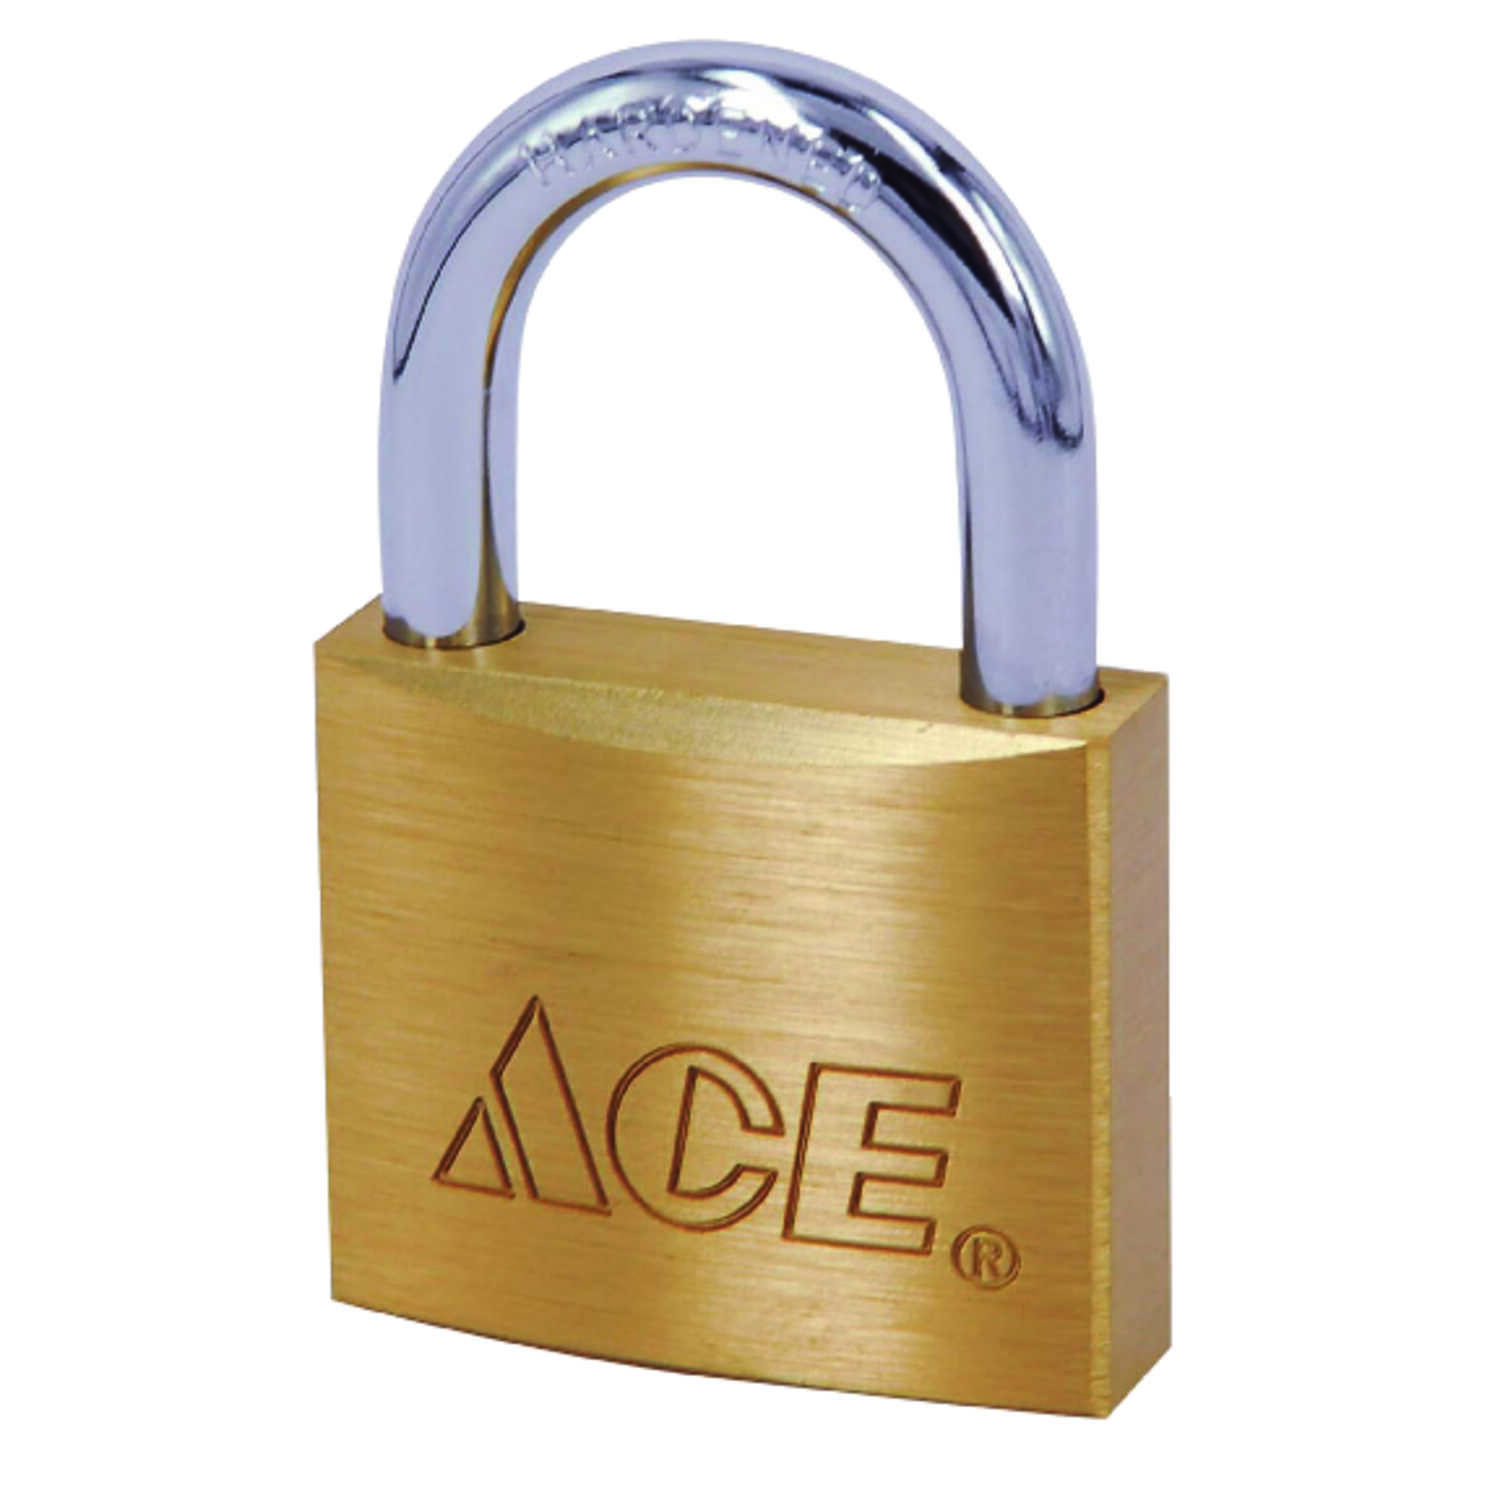 Ace  1-7/16 in. H x 1-7/8 in. W x 9/16 in. L Double Locking  Padlock  1 pk Brass